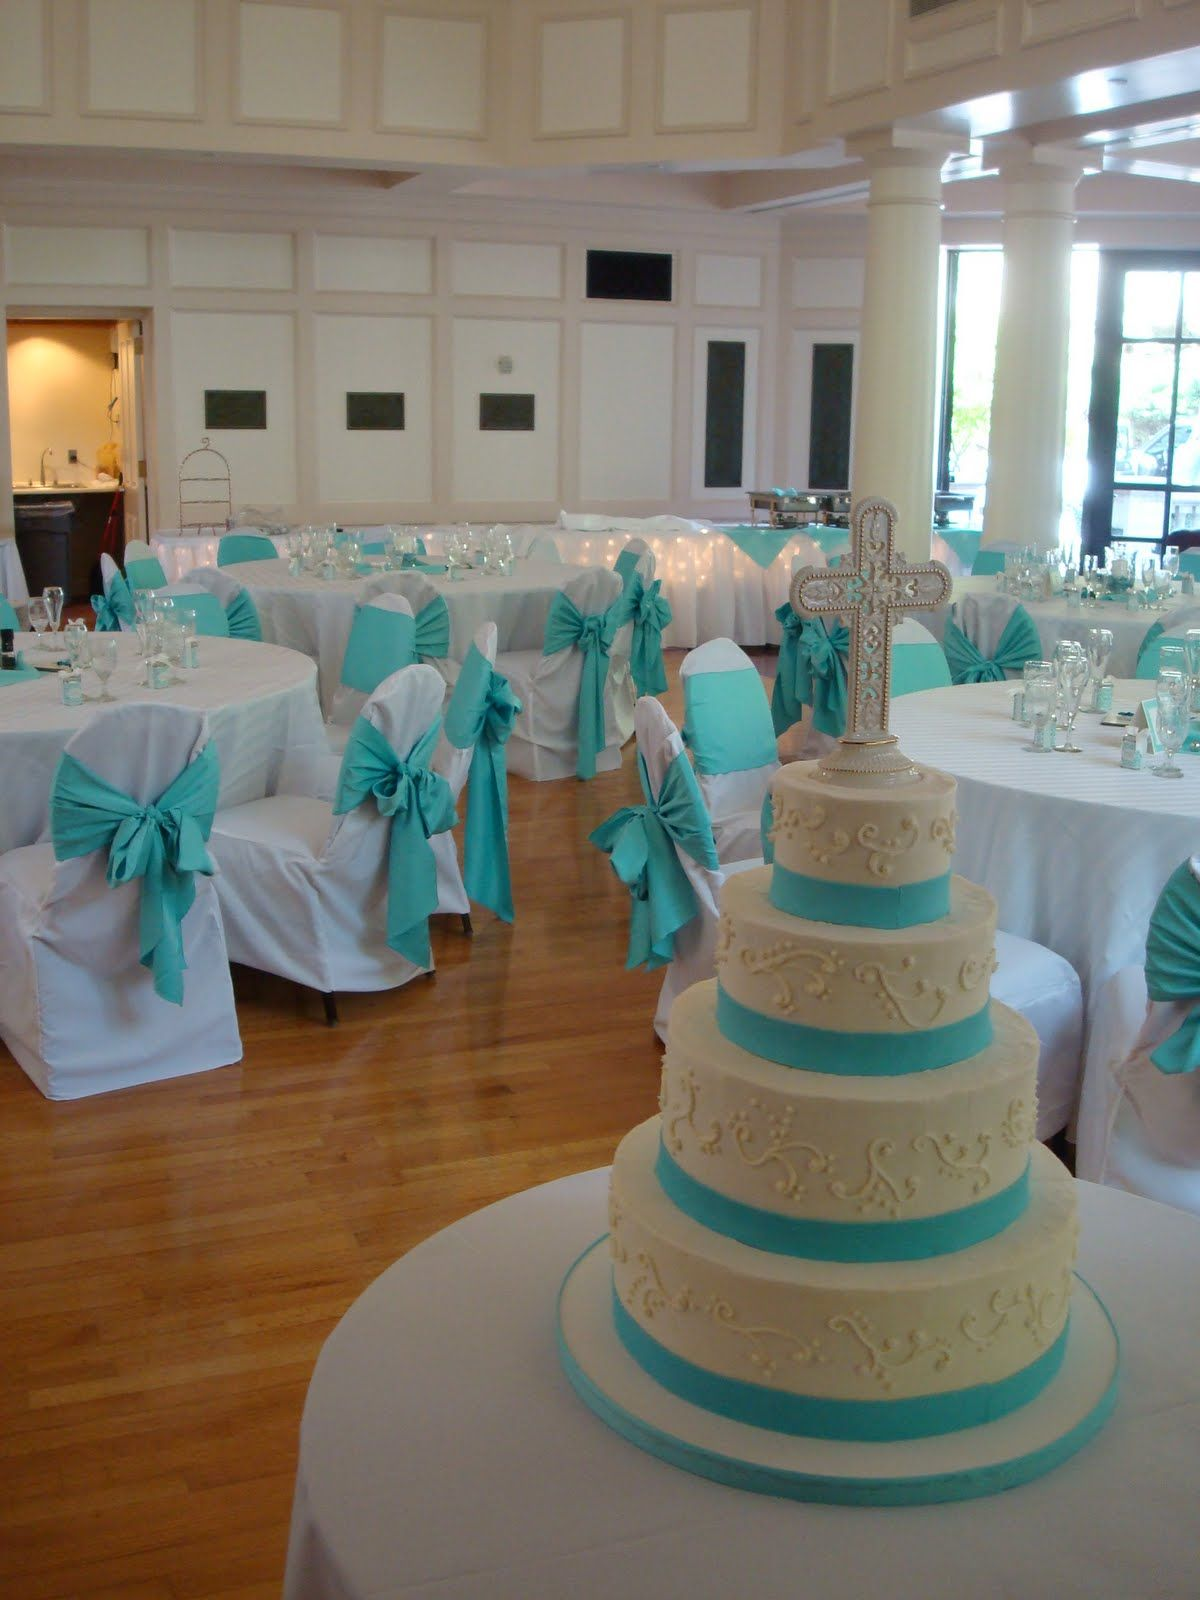 chair cover rentals dc blow up baby teal wedding inspiration themes designer covers to